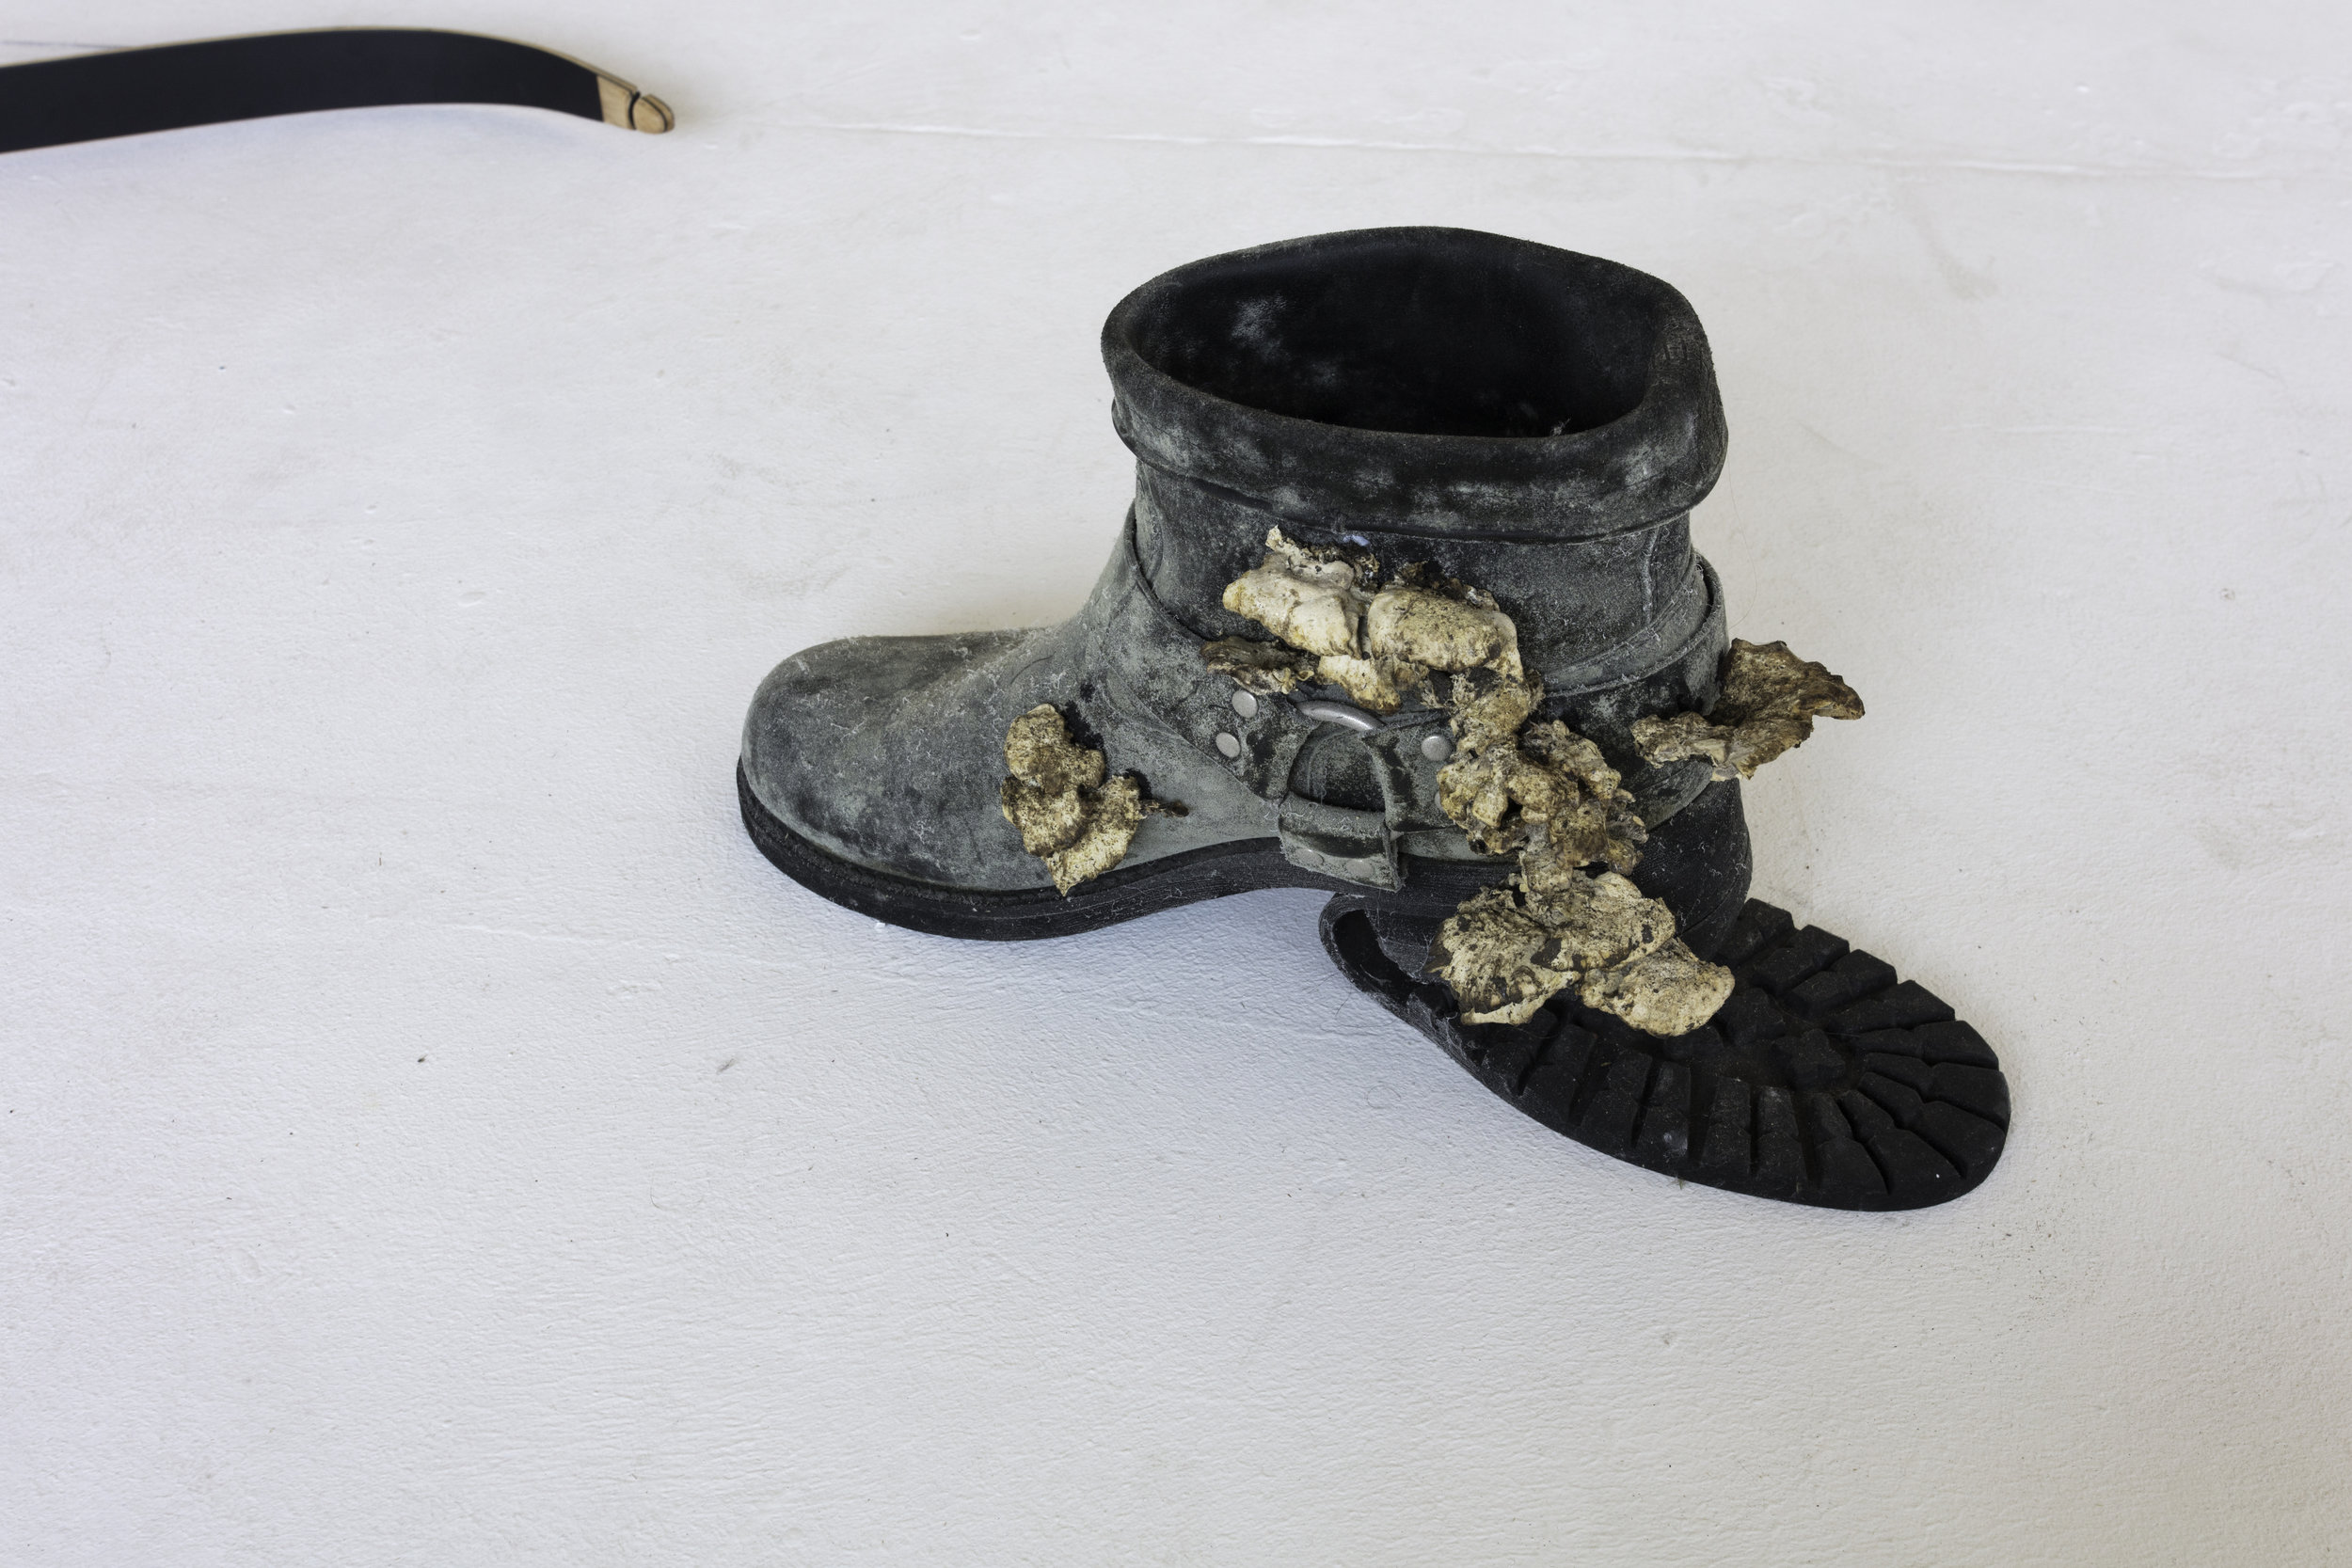 regression of men         artist's leather boots, mold, wood-ear mushrooms